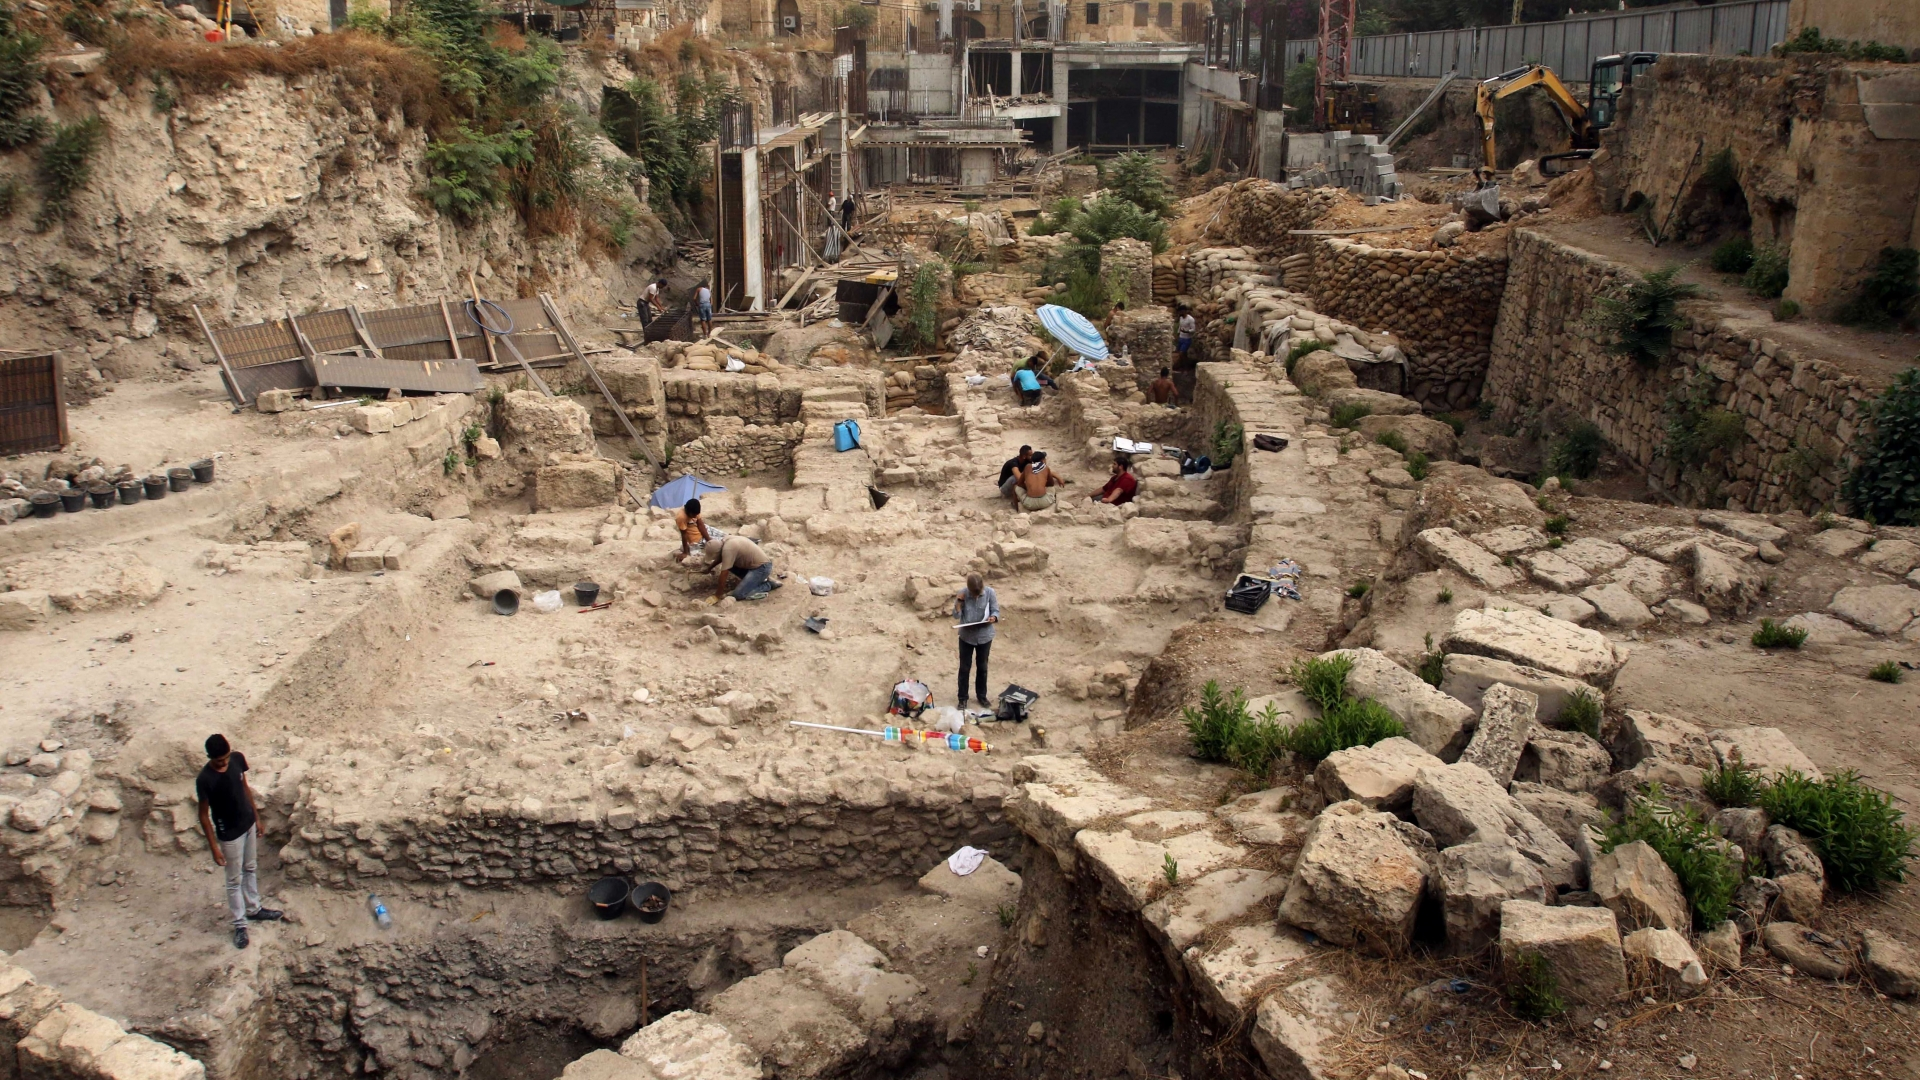 Excavation site in the Lebanese city of Sidon. (Credit: Mahmoud Zayyat/AFP/Getty Images)